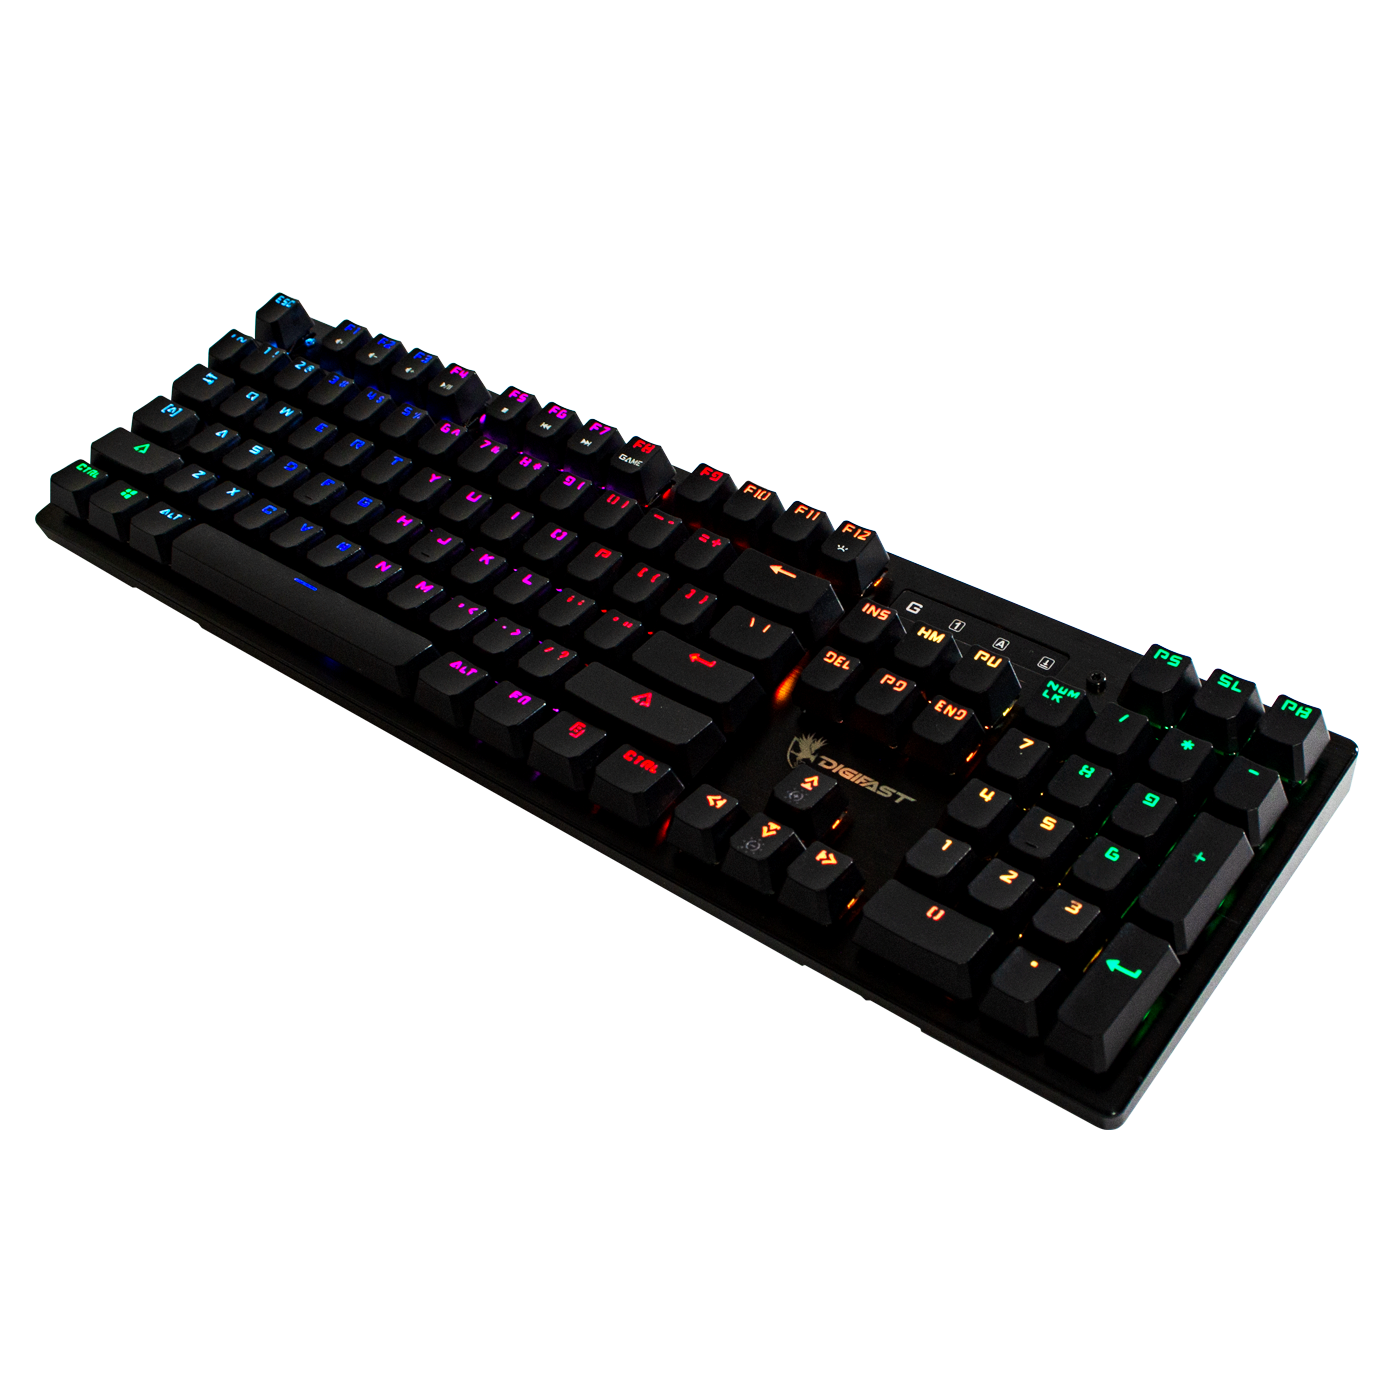 Gaming Keyboard - Digifast Mechanical, Custom RGB, Clicky Feedback, Durable, Water Resistant Wired, USB, Gaming Keyboard Lightning Series LK32